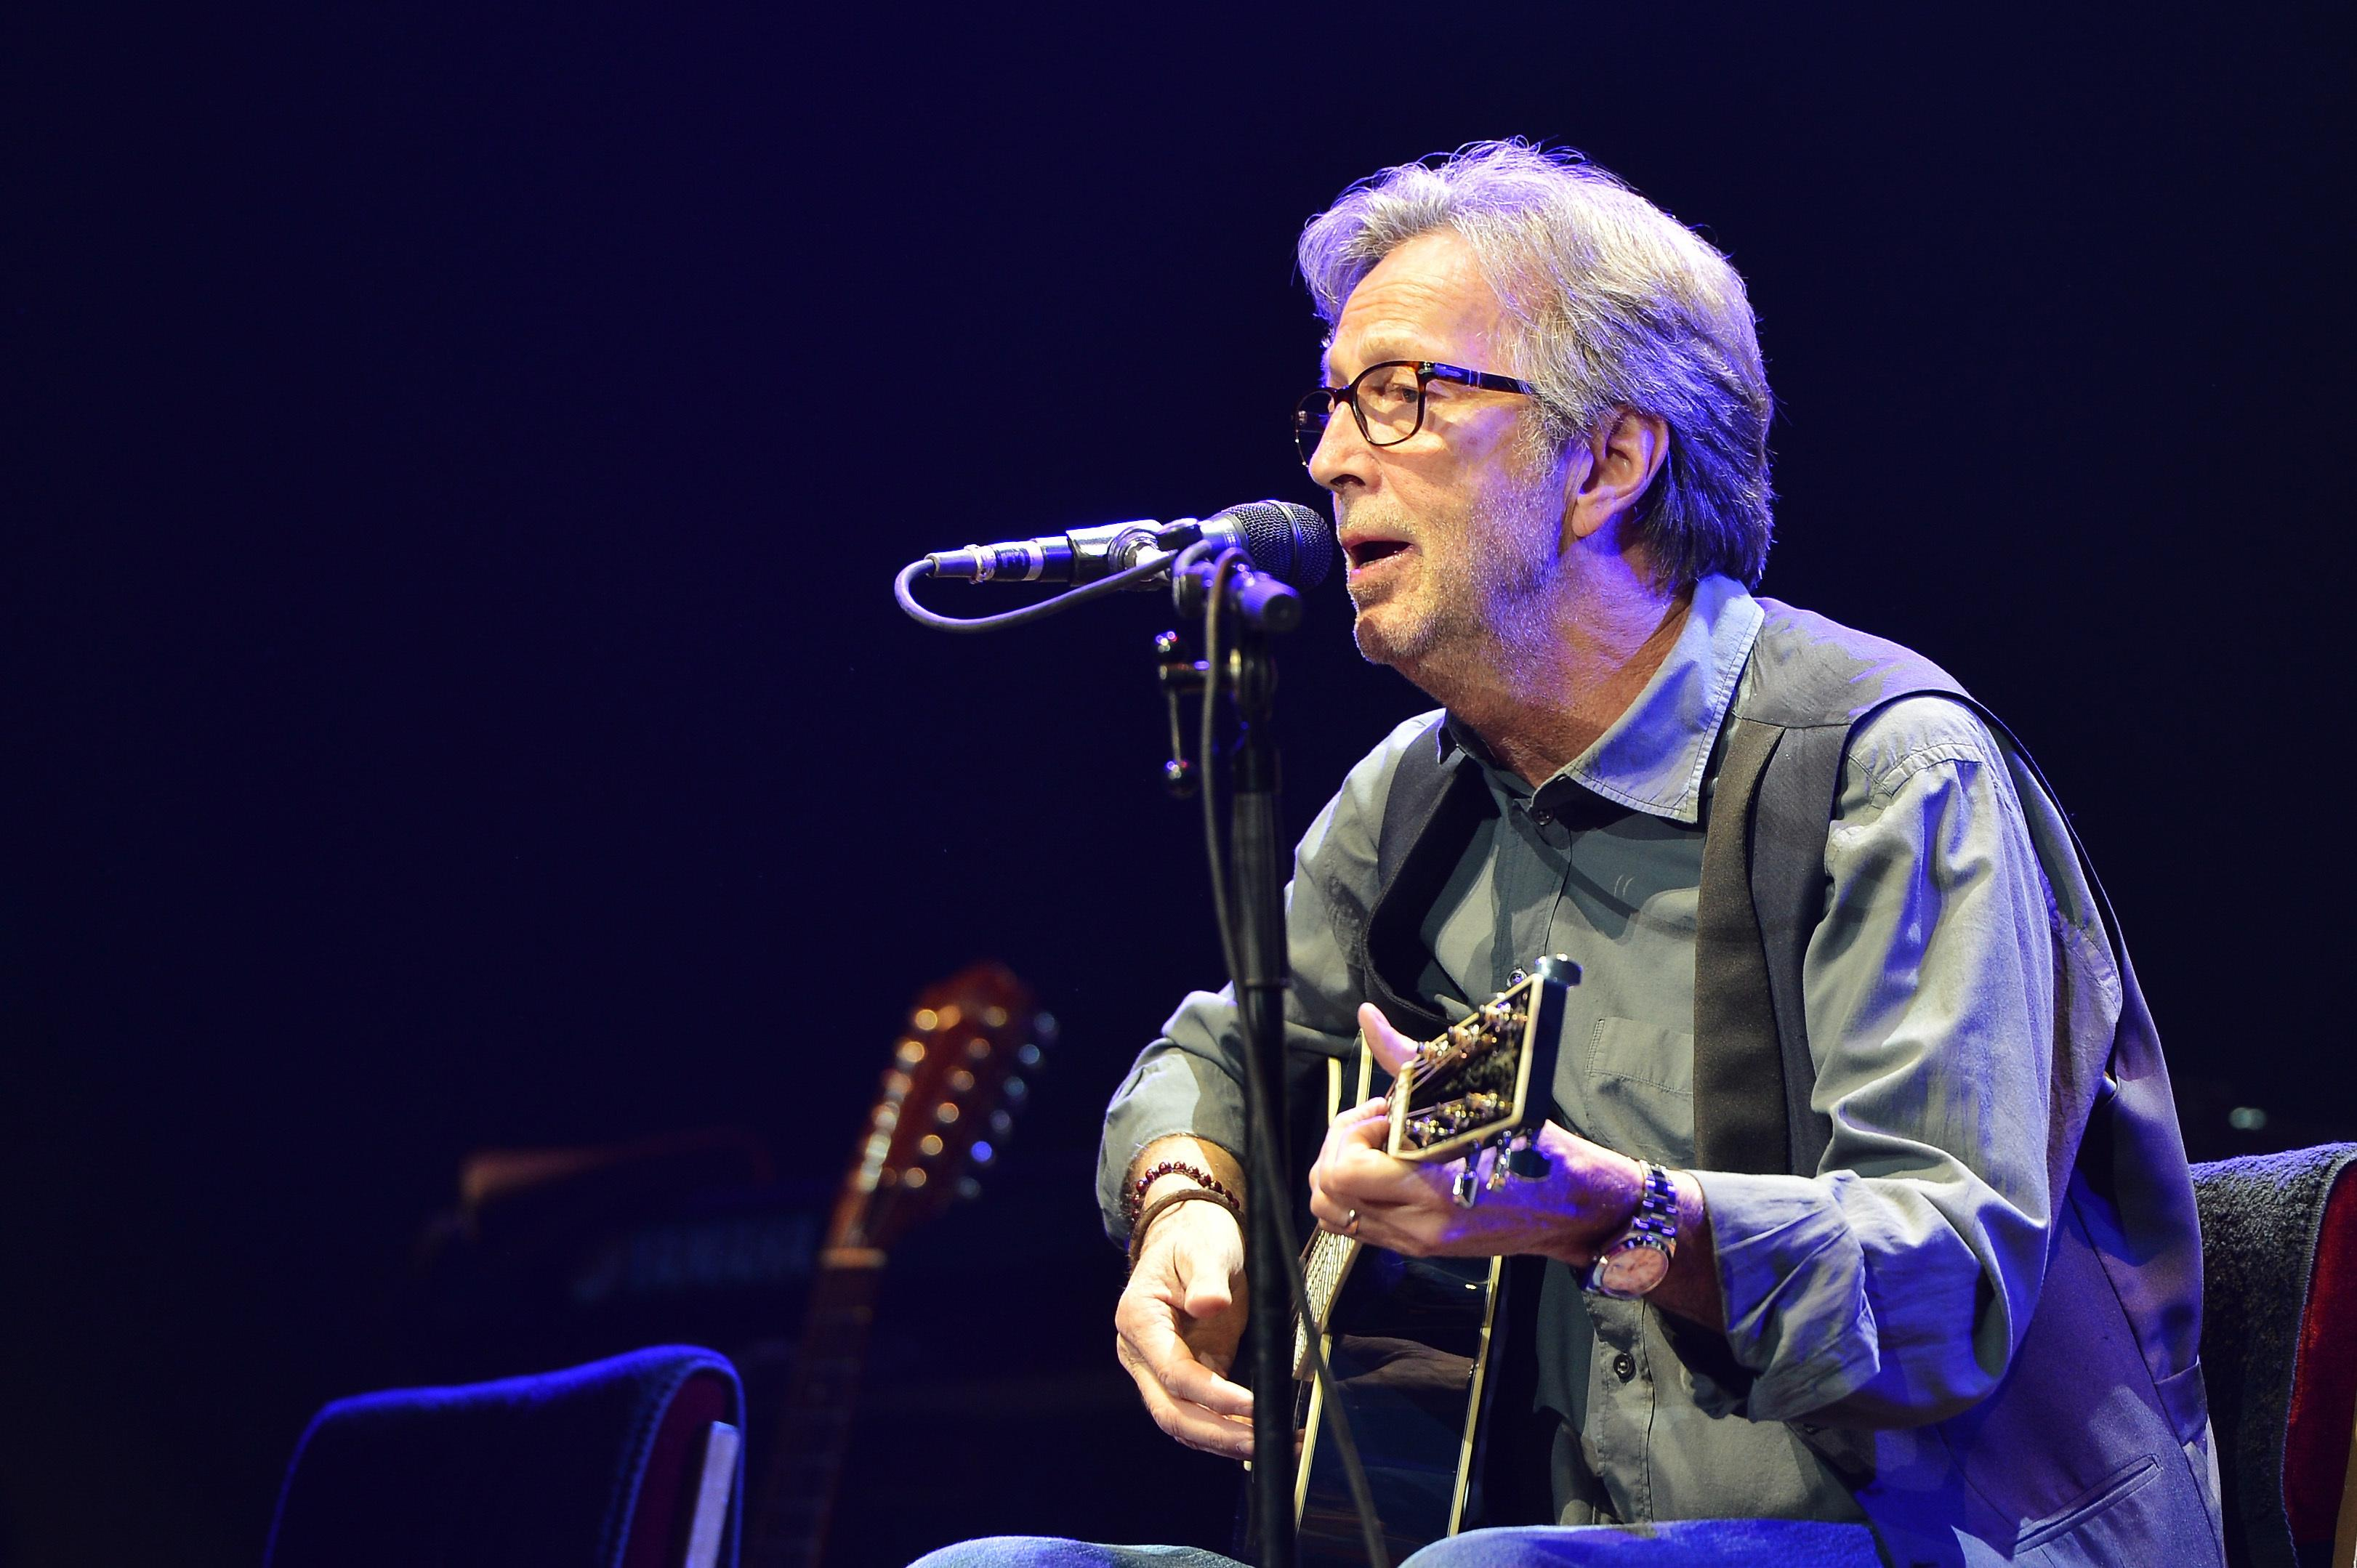 Eric Clapton - Tears In Heaven (Official Video) - Jellynote